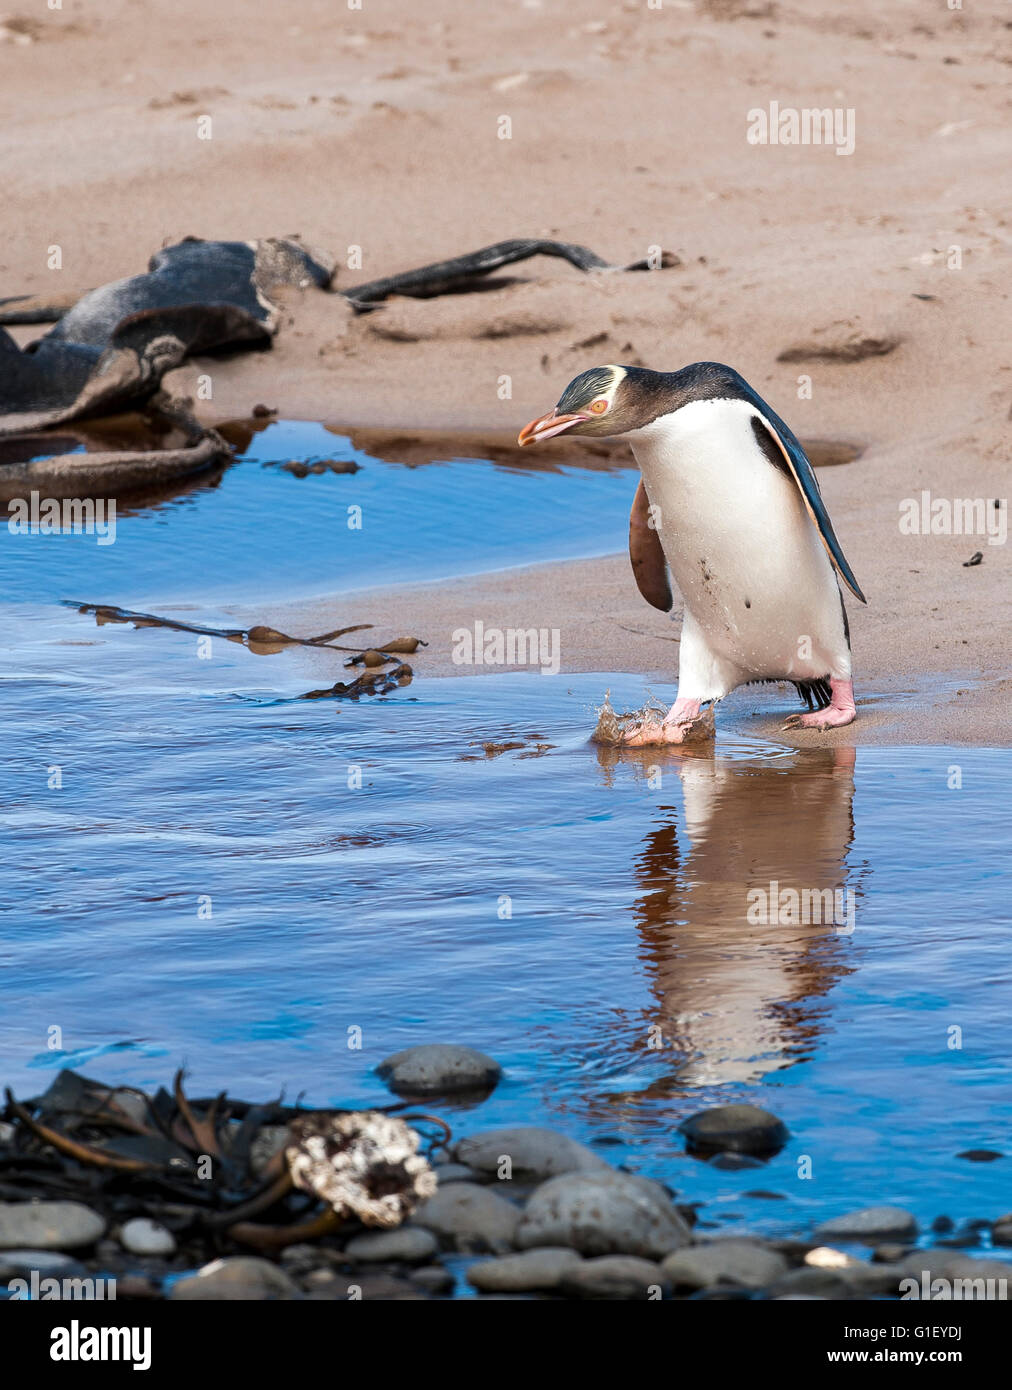 Yellow-eyed penguin (Megadyptes antipodes) walking on beach Enderby island Nouvelle Zélande Photo Stock